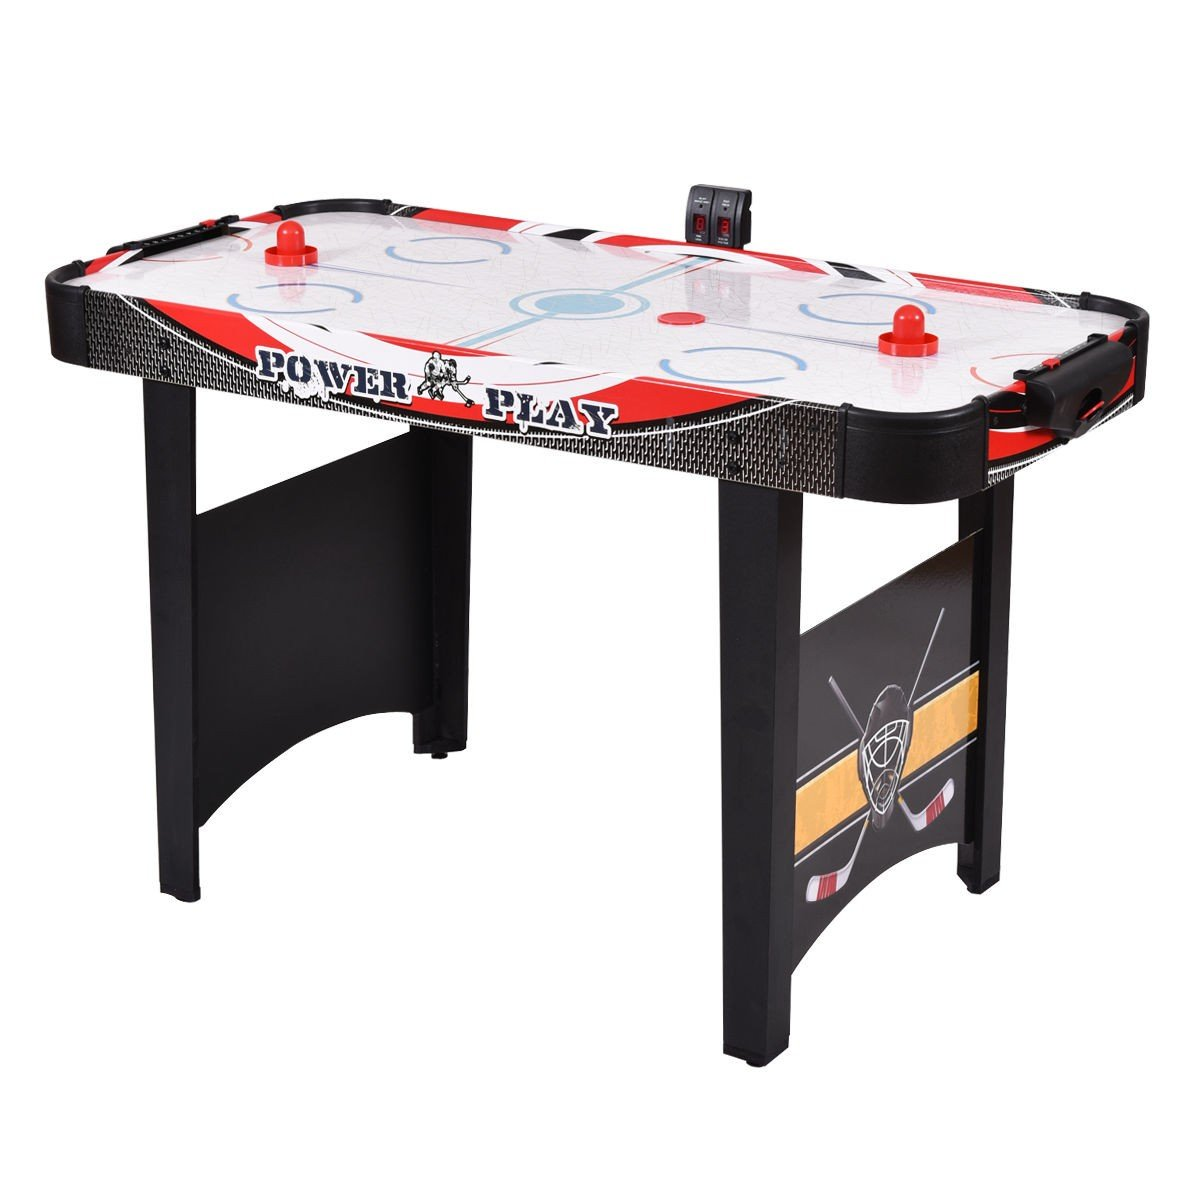 CWY 48'' Indoor Air Powered Hockey Table Only by eight24hours